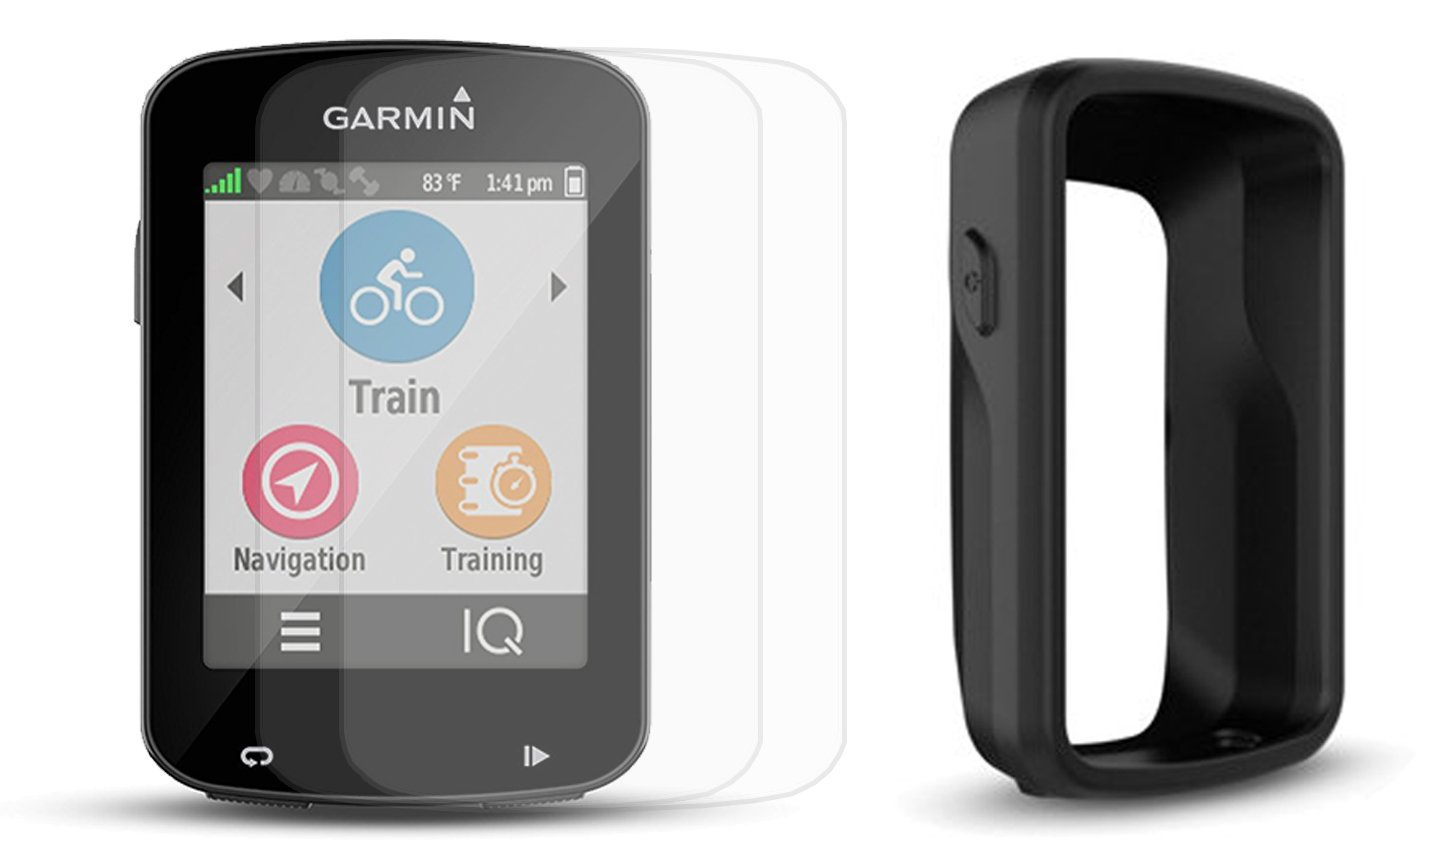 Garmin Edge 820 Cycle Bundle with PlayBetter Protective Silicone Case & HD Glass Screen Protectors (2-Pack) | Touchscreen Display, GPS Bike Computer (Black Case, GPS Only)